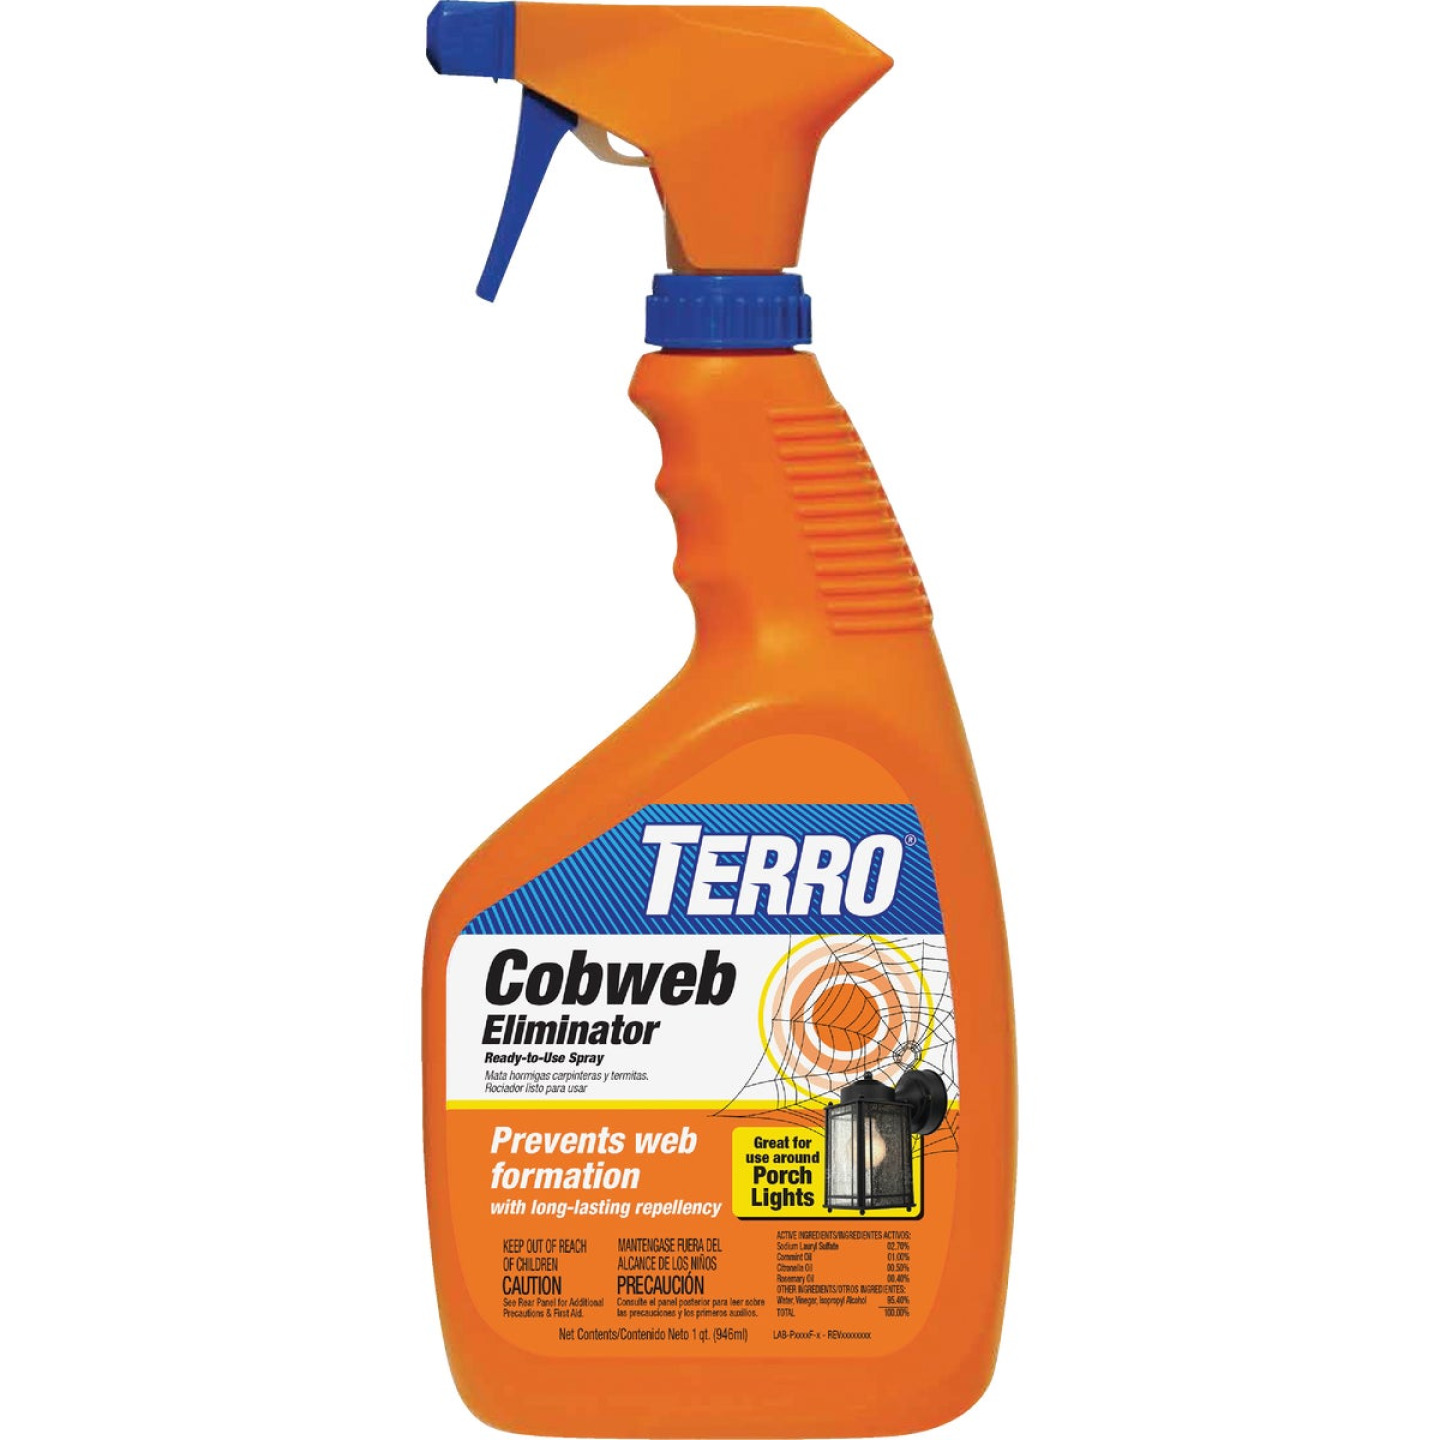 Terro 32 Oz. Trigger Spray Cobweb Eliminator Image 1